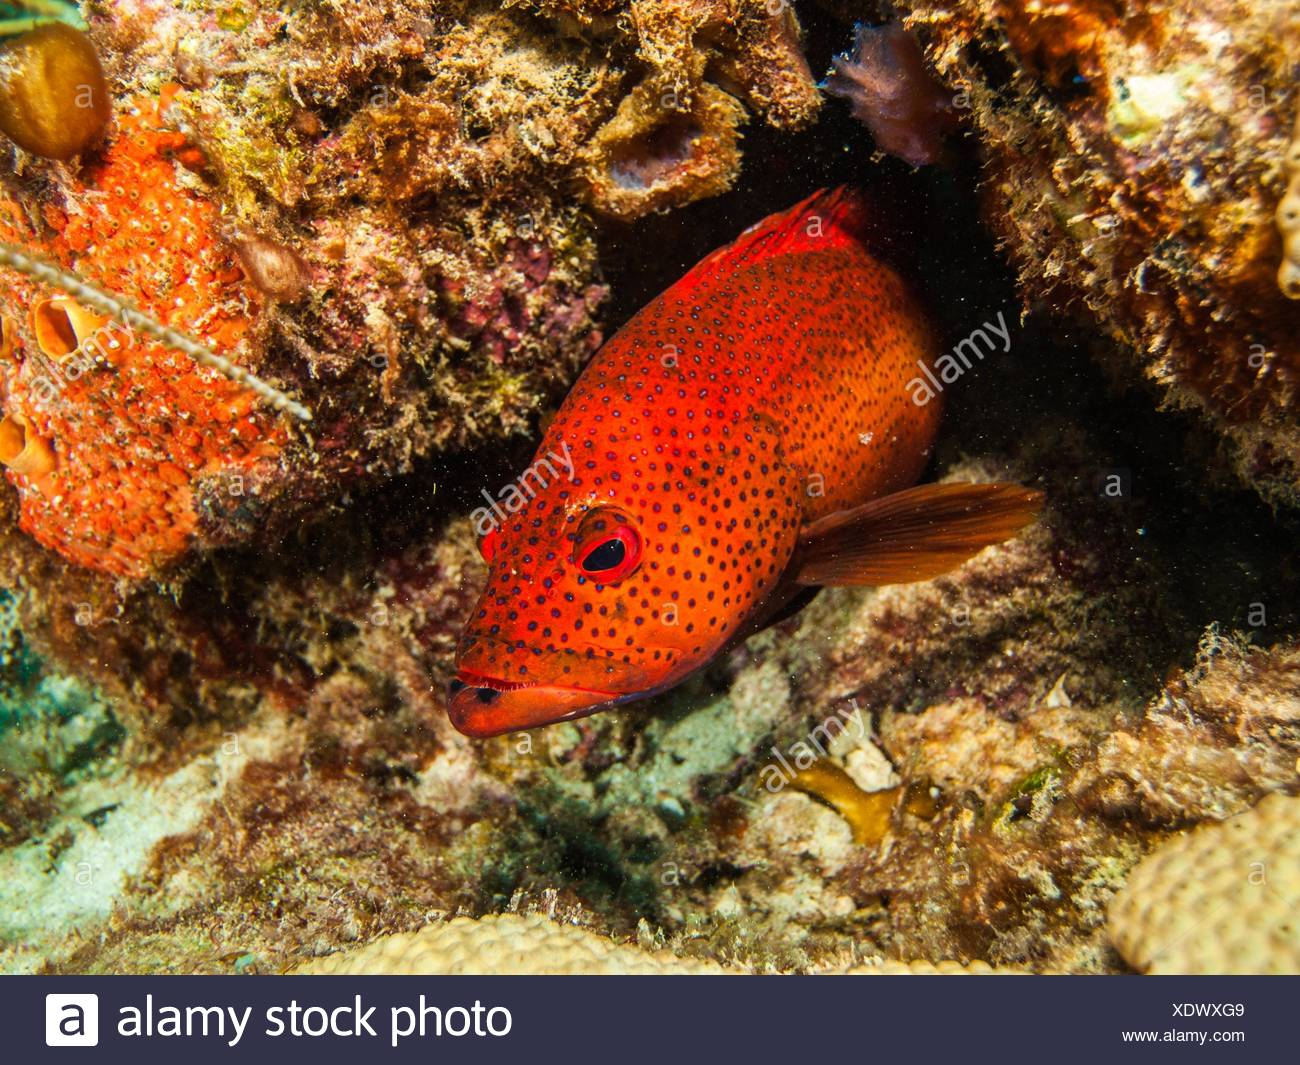 Coney Fish Cephalopholis Fulva Stock Photos & Coney Fish ...